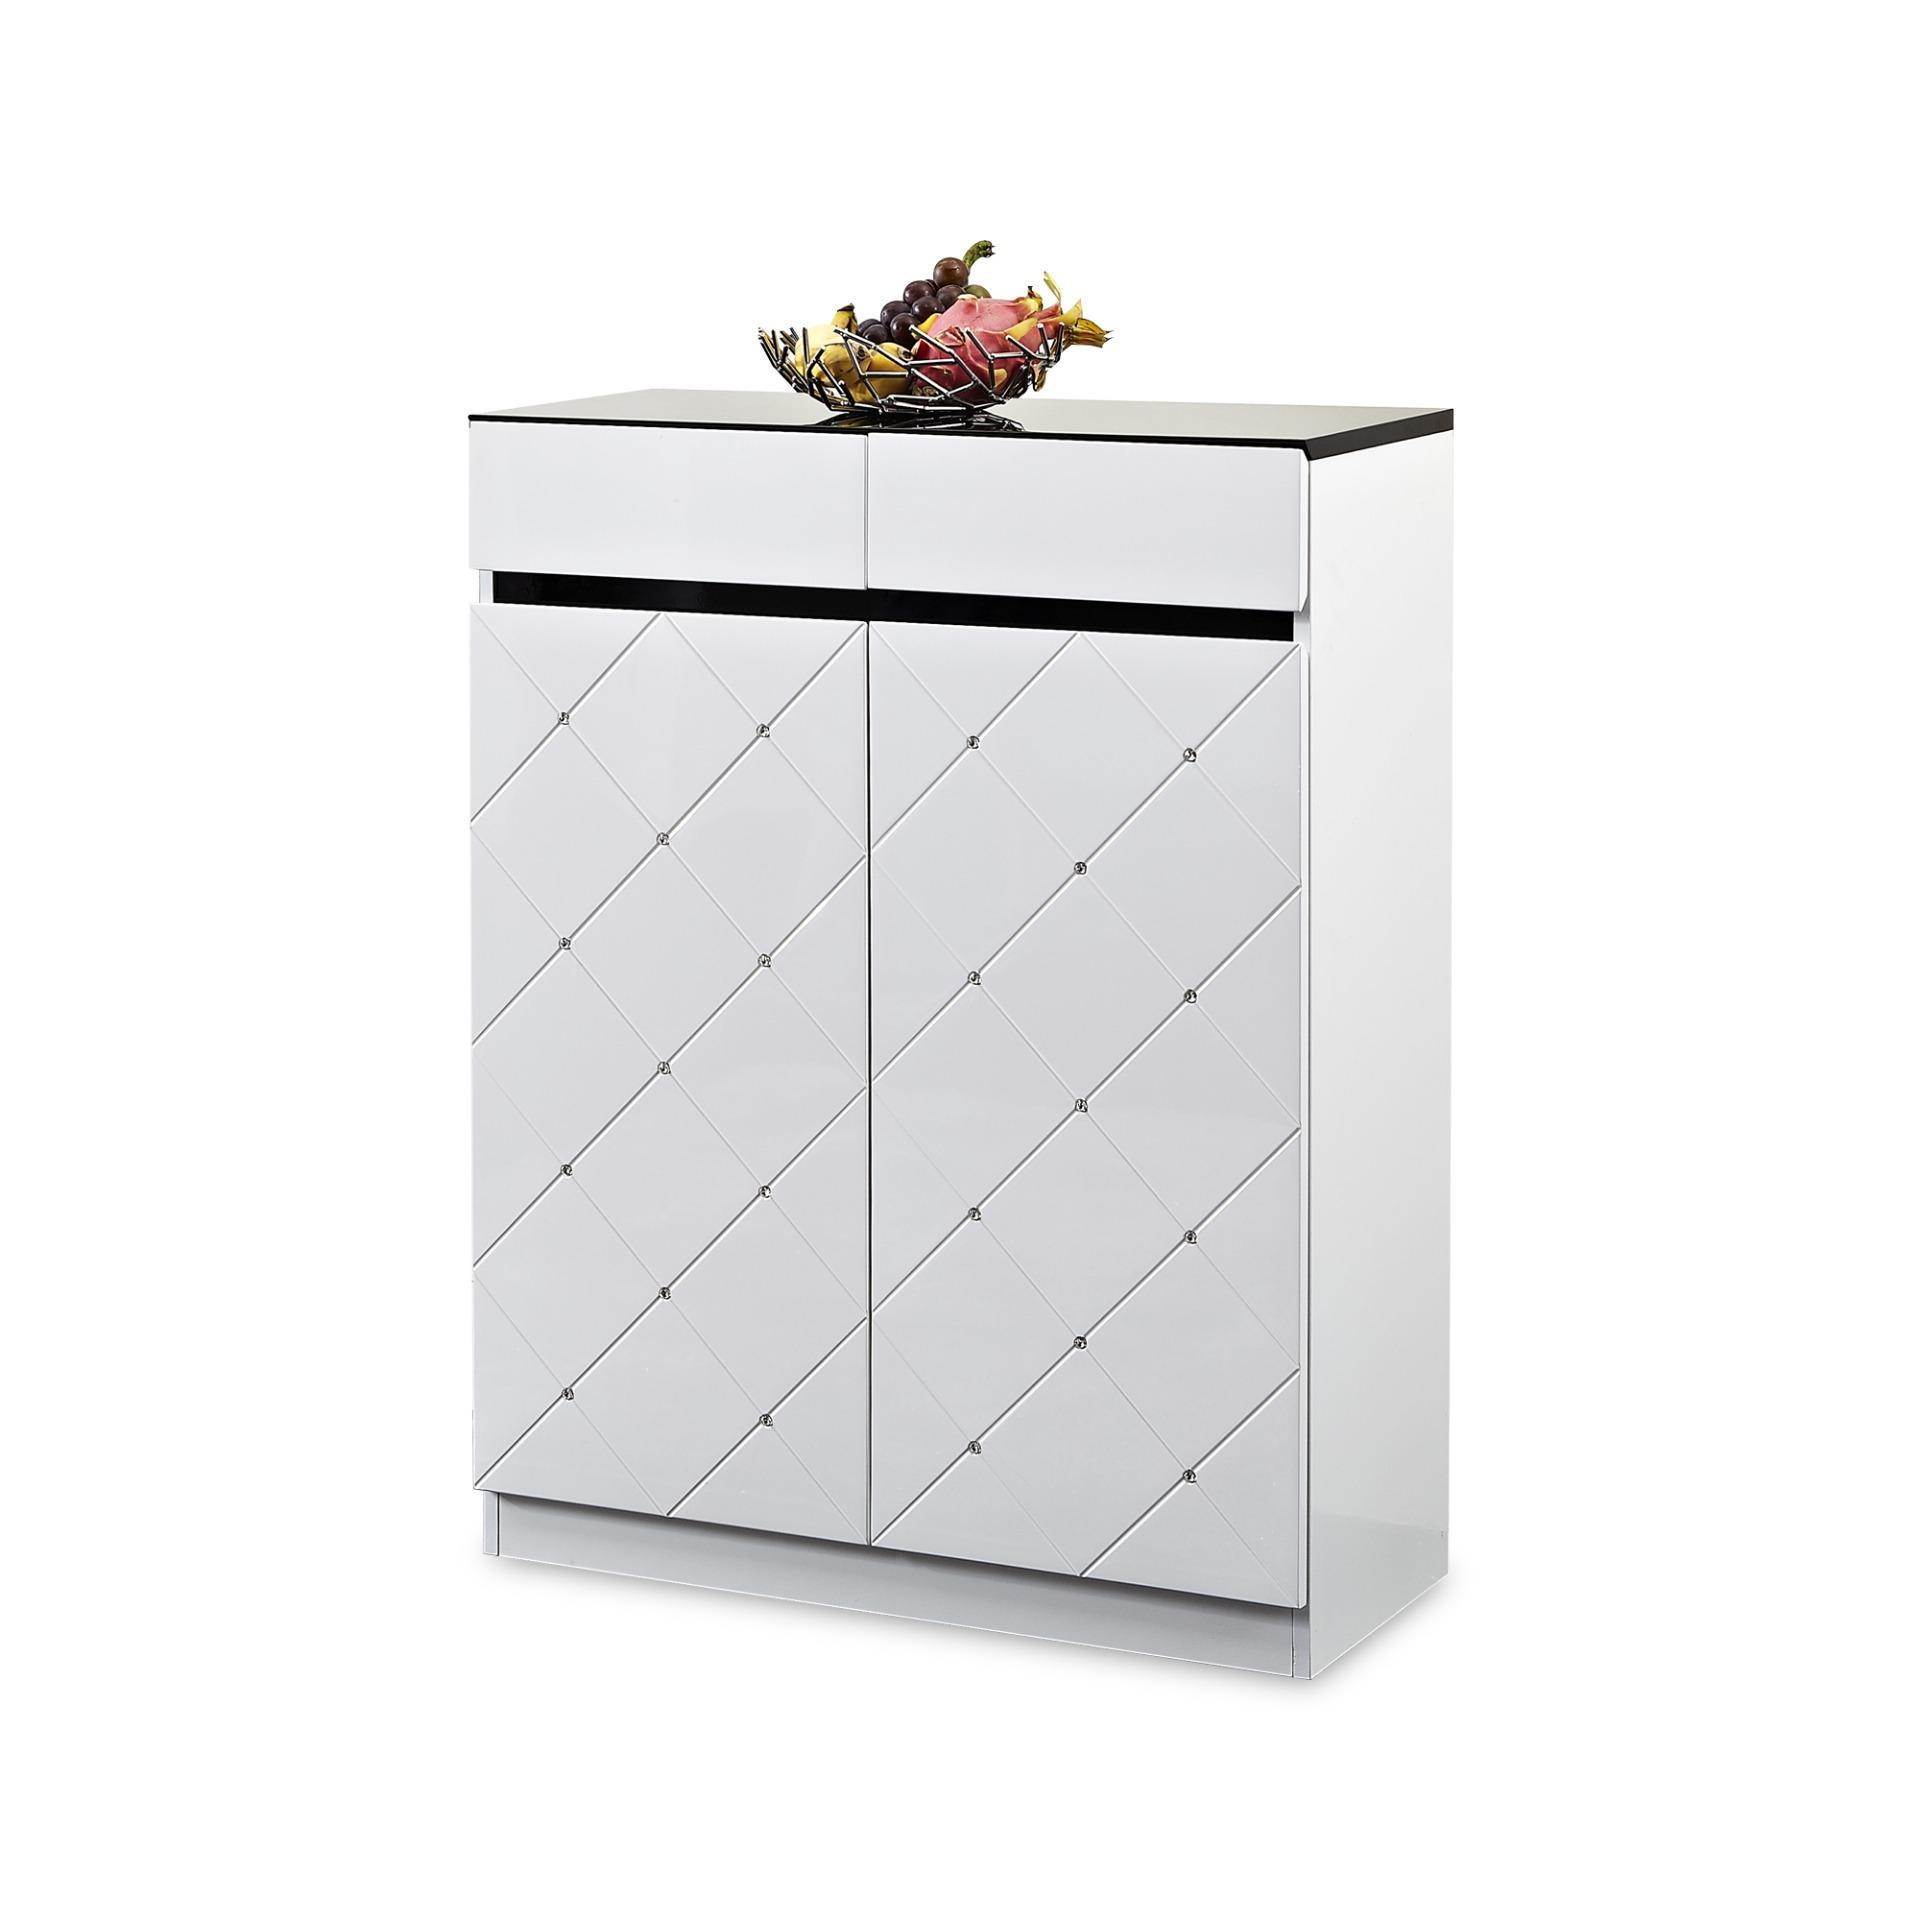 Alan 2 Door Shoe Cabinet (FREE DELIVERY)(FREE ASSEMBLY)